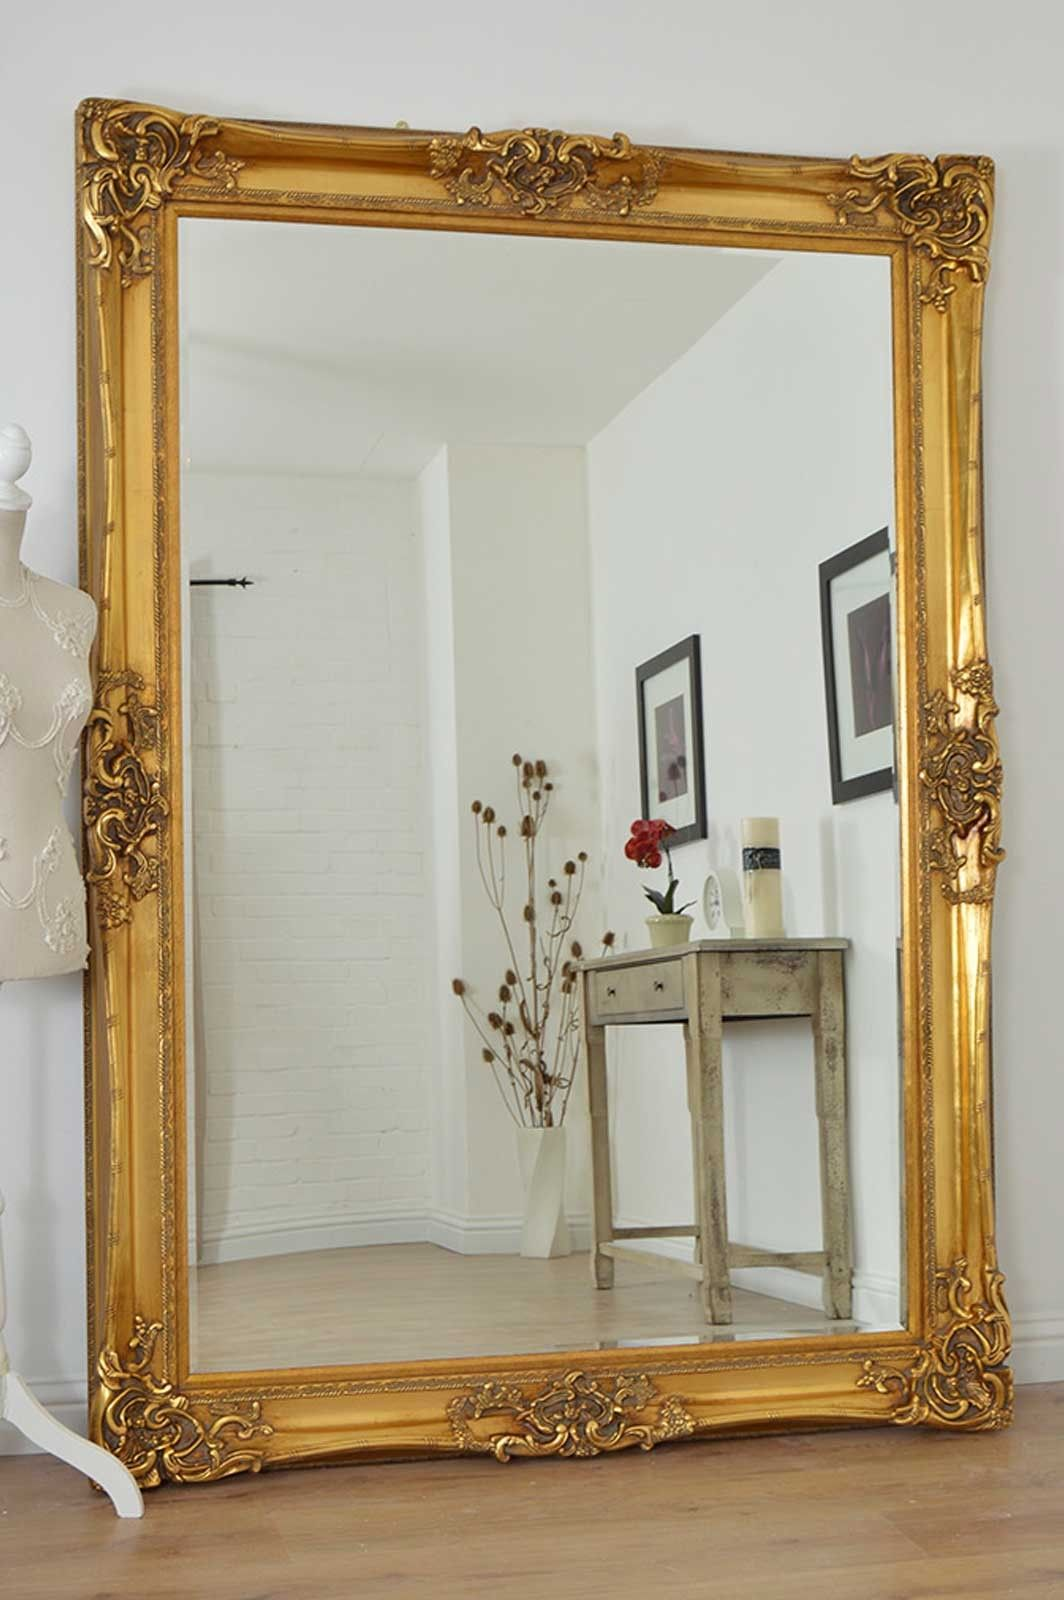 Large gold very ornate antique design wall mirror 7ft x for Big mirrors for sale